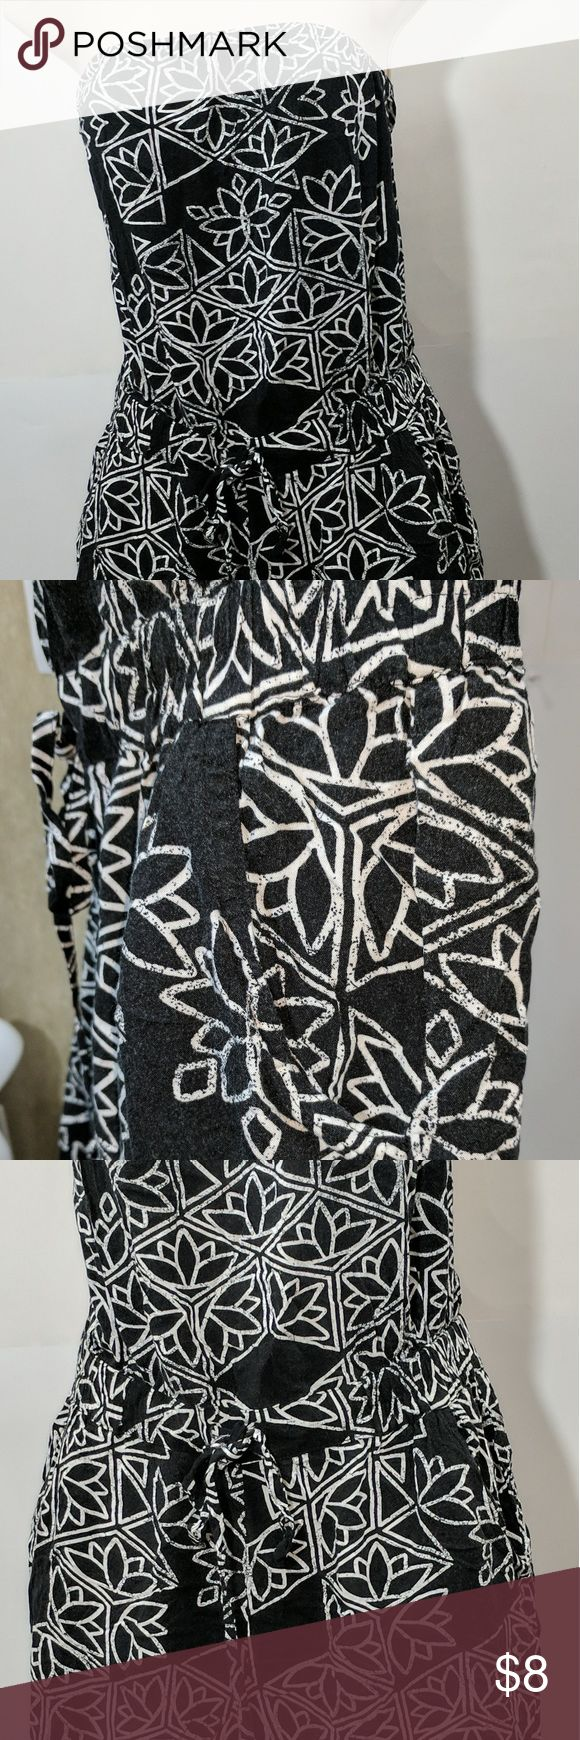 Ladies halter romper Capri leg size L This is a ladies romper halter top pant Capri Style black and white print with pockets and string tie at waist. When white flat from bottom of leg to top of halter is approximately 43 in. From bottom of leg to crotch is approximately 21in from armpit to armpit is approximately 15 in. And good conditions no signs of lawyer Mudd Pants Jumpsuits & Rompers